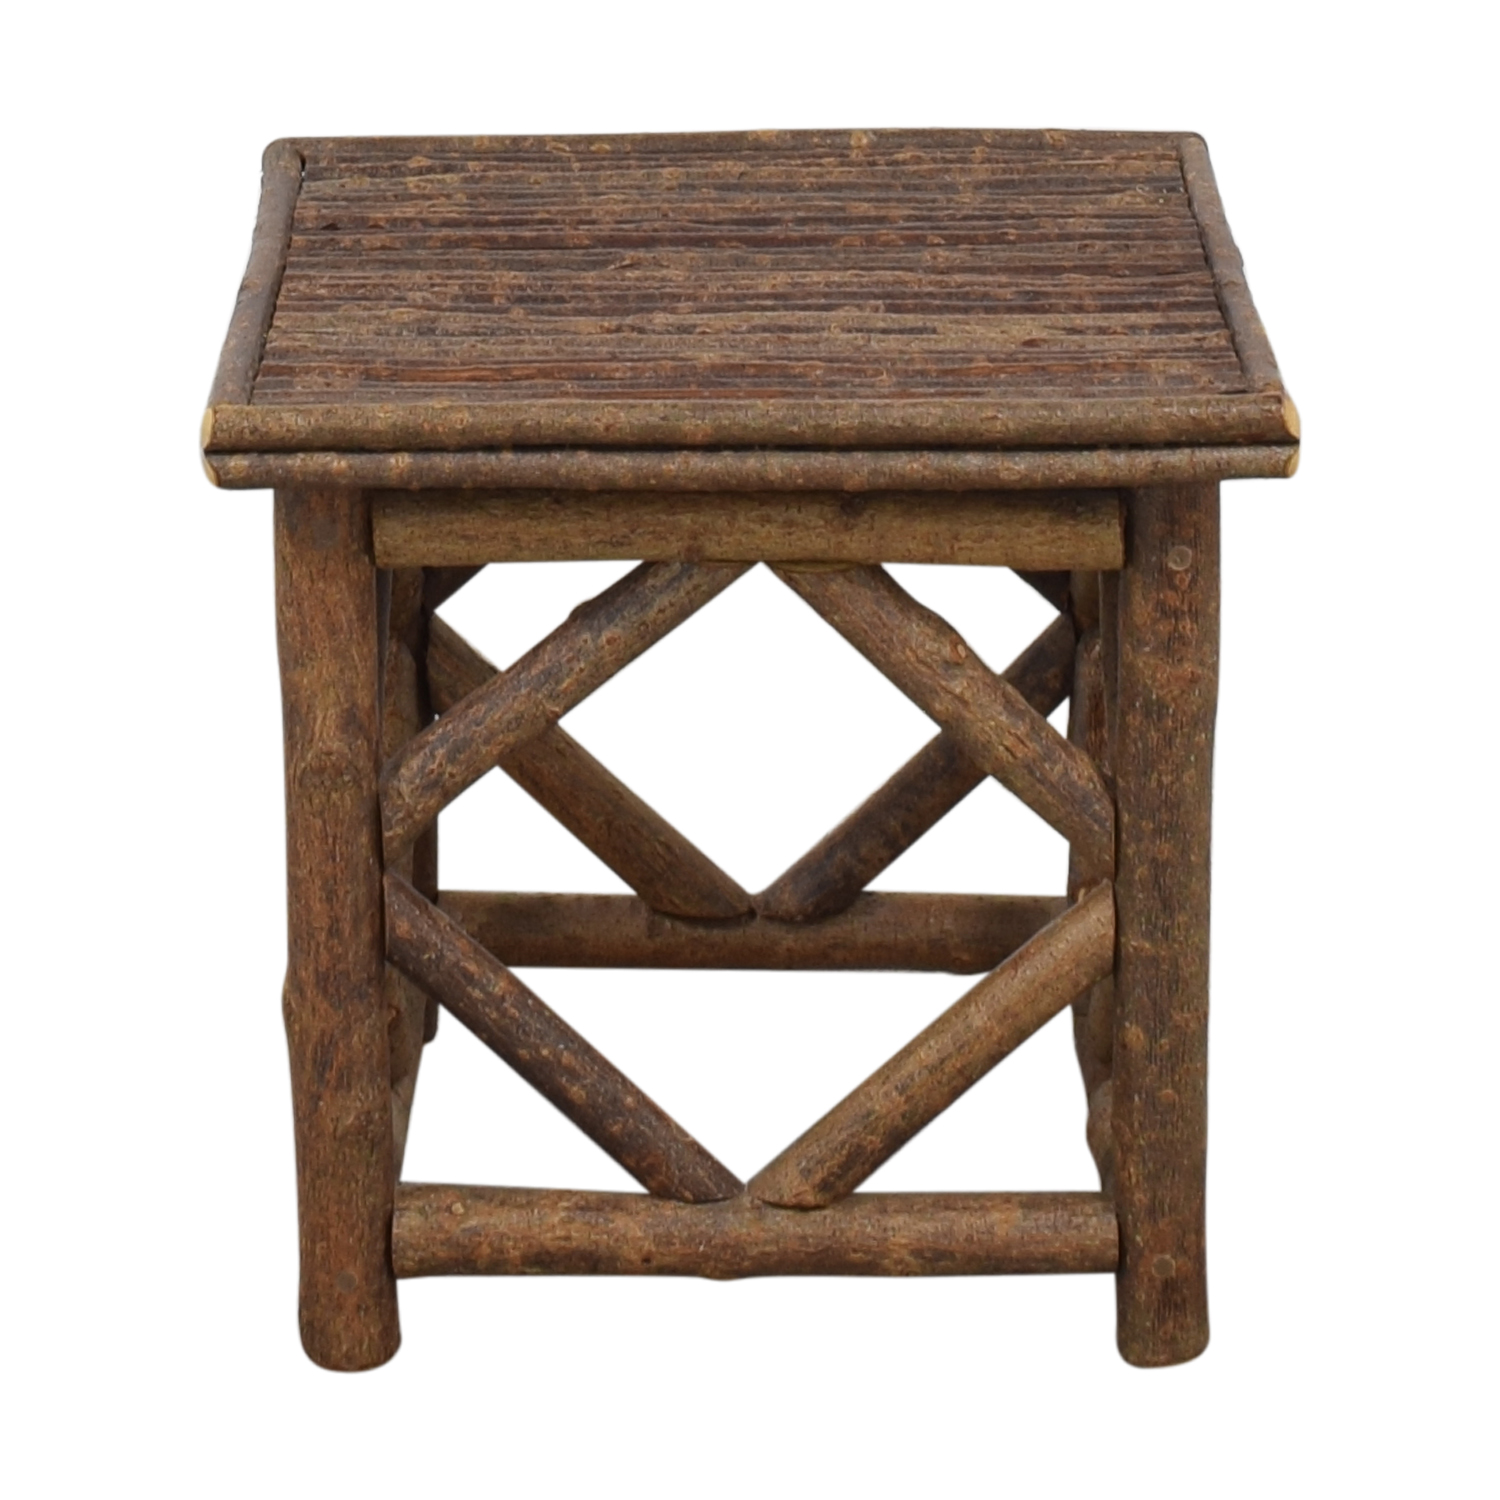 La Lune Collection Rustic End Table dimensions